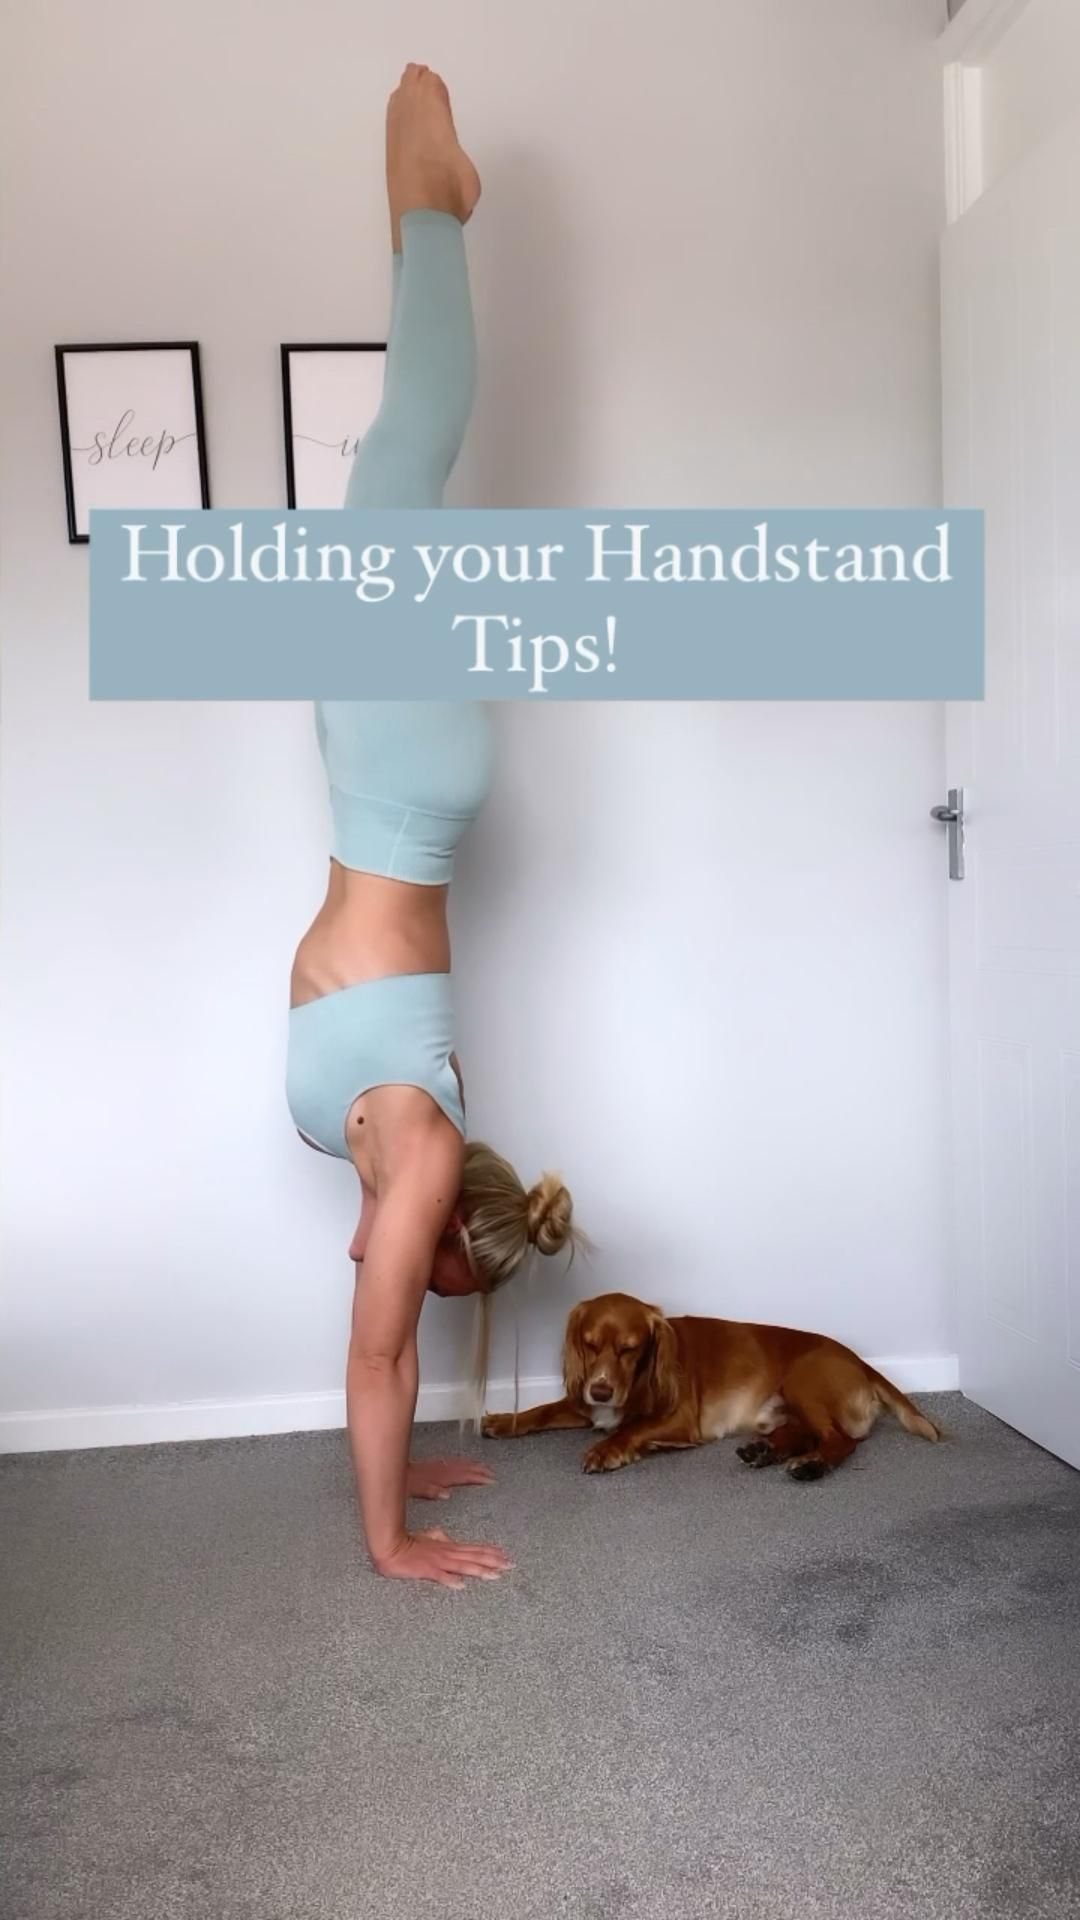 Holding your Handstand - Tips!